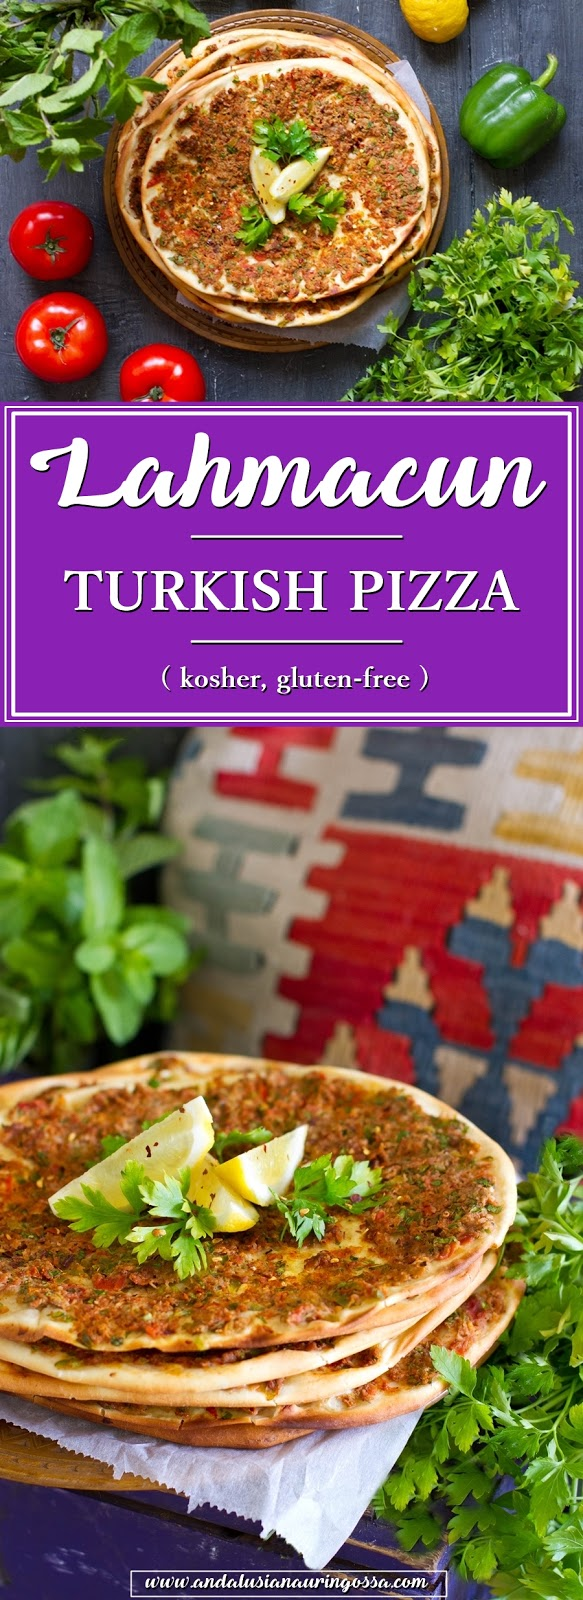 Lahmacun_Turkish pizza_turkish street food_recipe_kosher_glutenfree_Under the Andalusian Sun_foodblog_travelblog_PIN ME